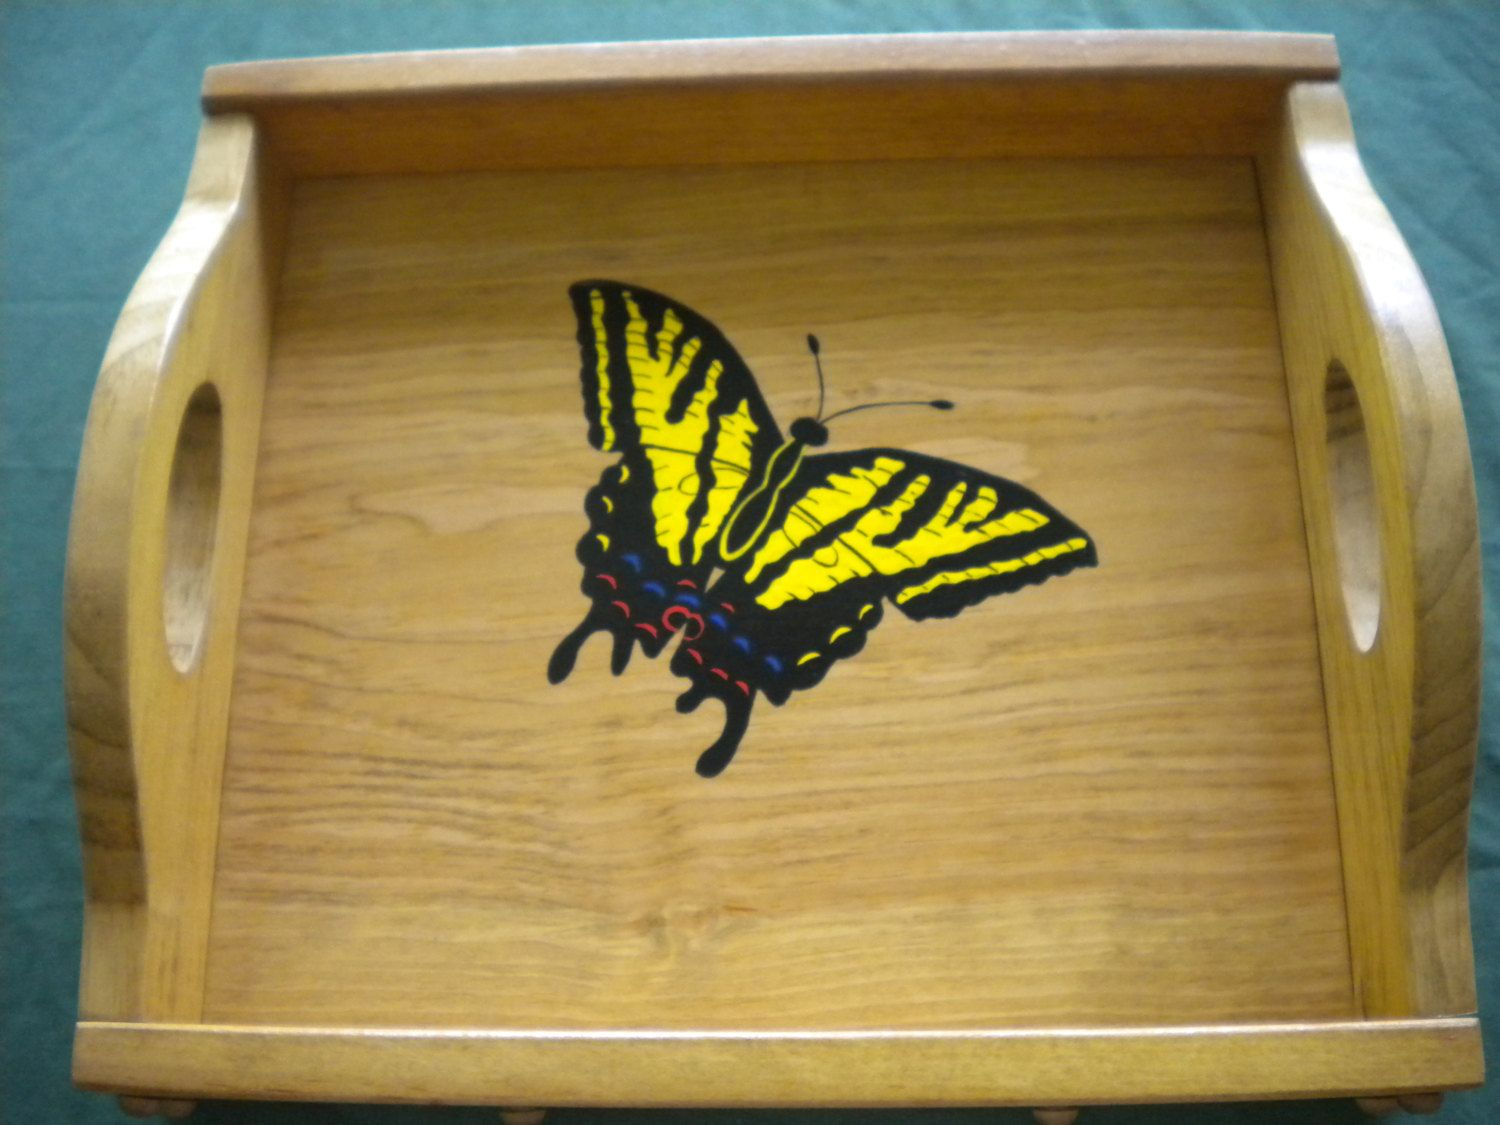 Acrylic Decorative Tray Serving Tray Acrylic Painting Of A Swallow Tail Butterfly Handmade